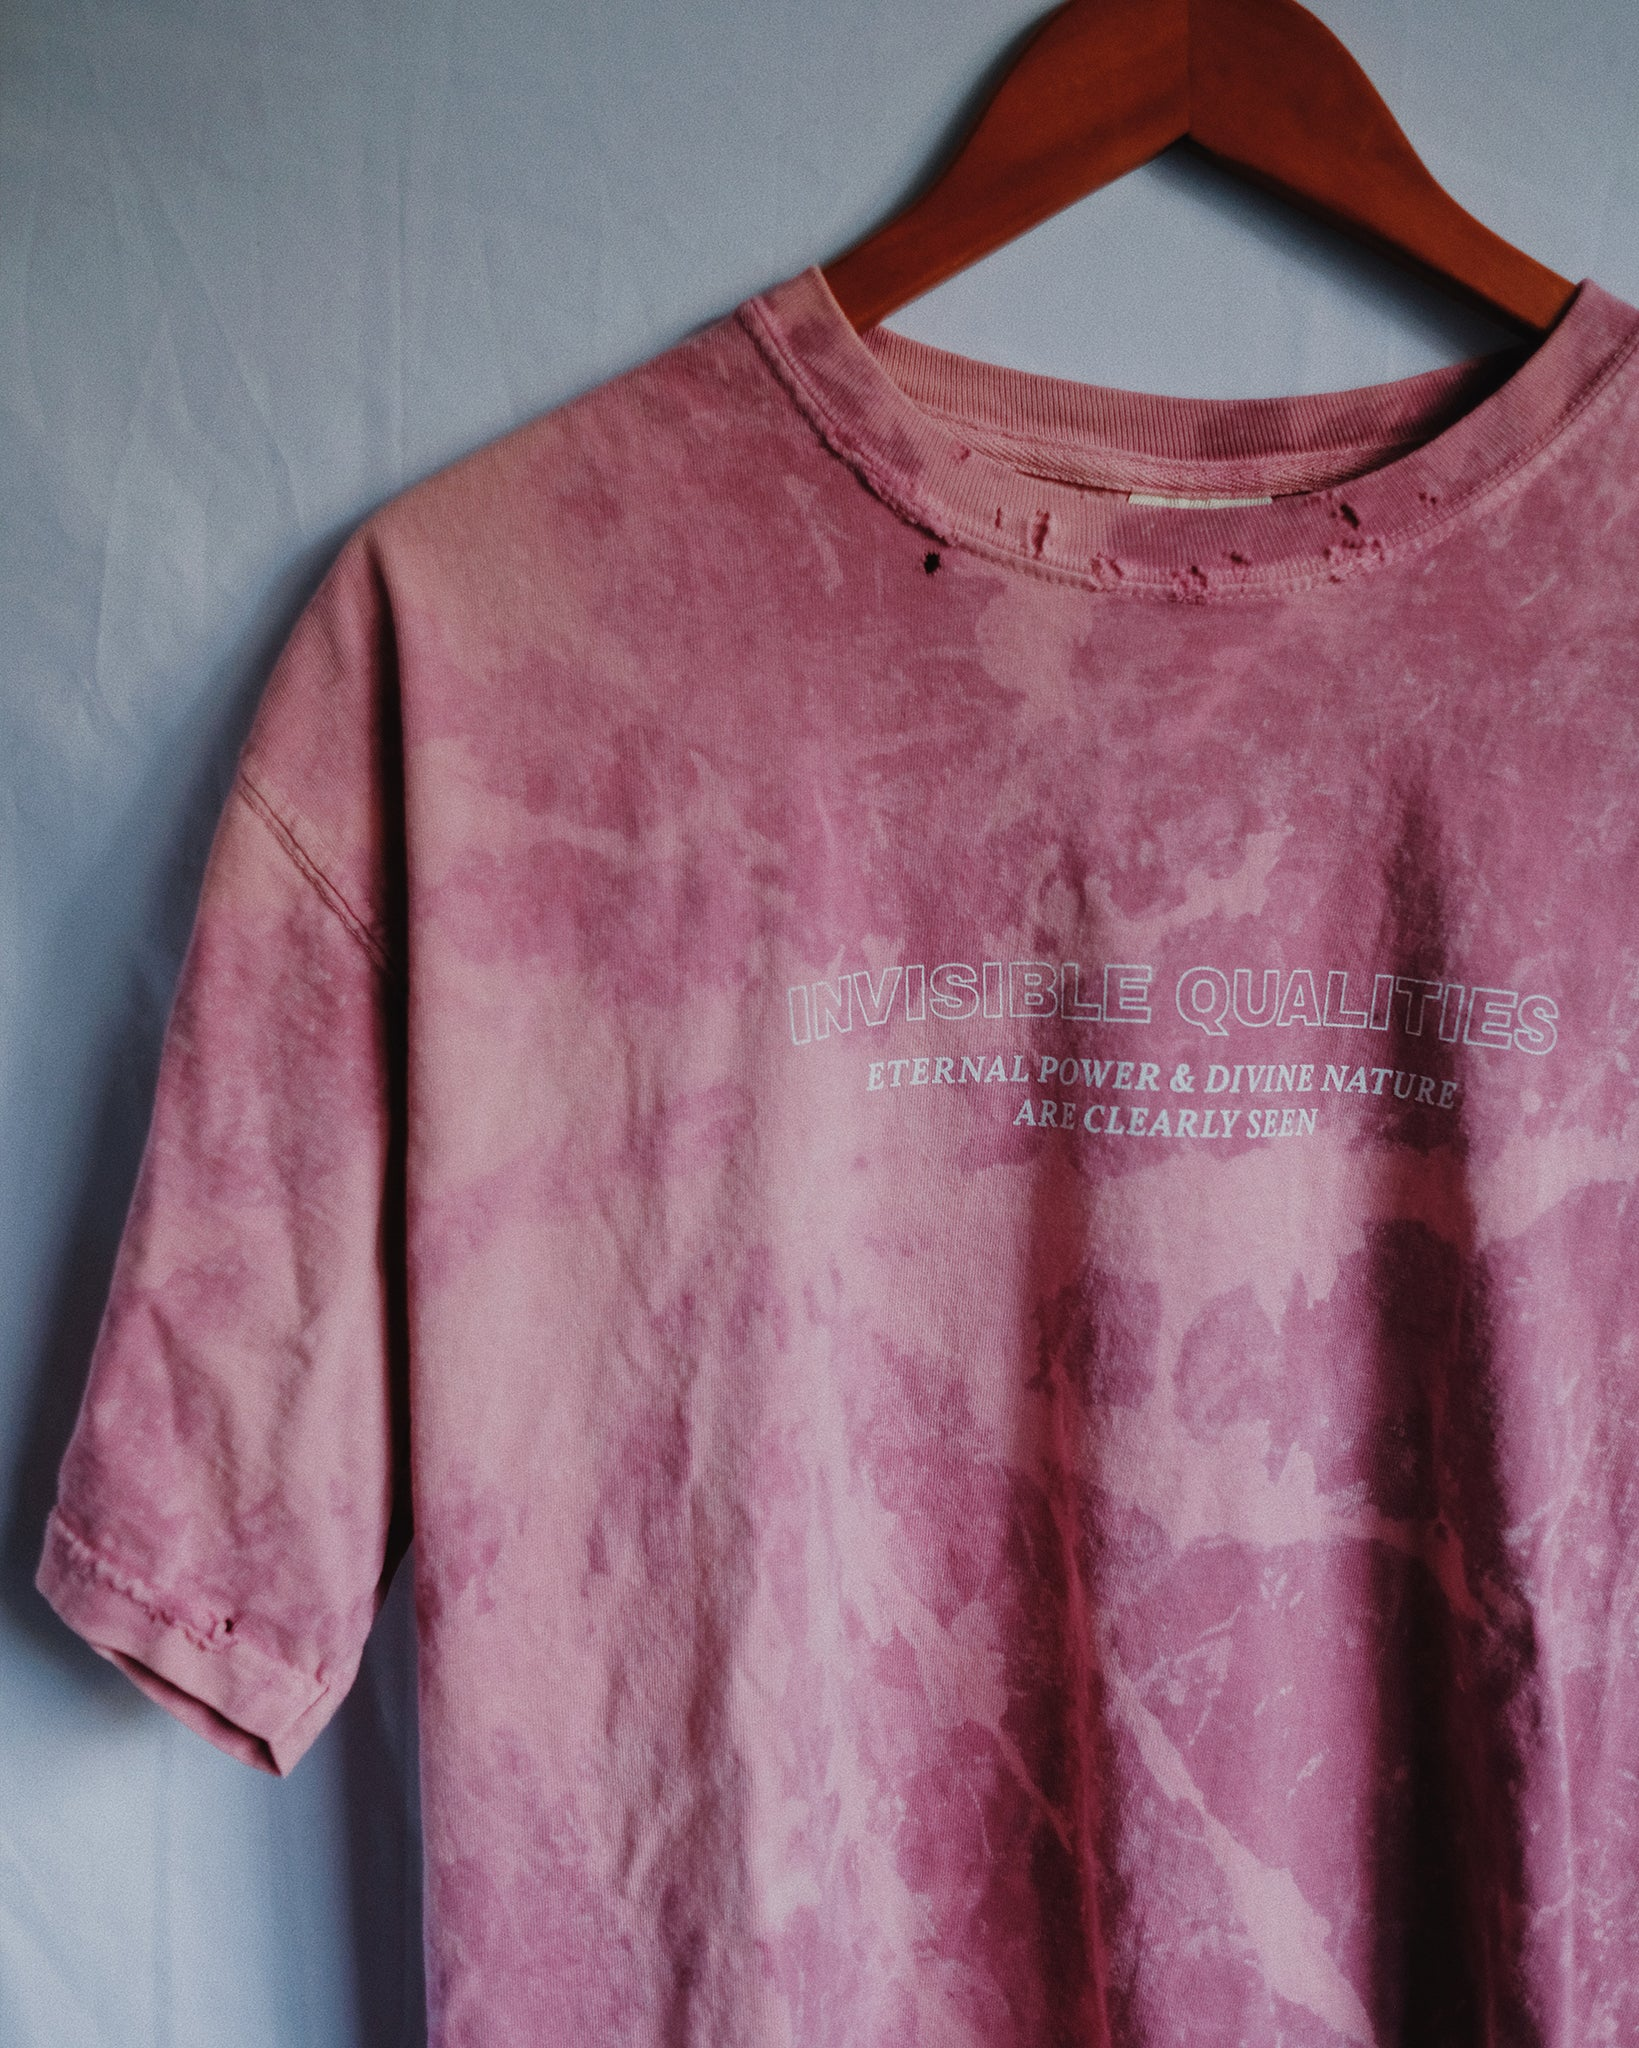 Invisible Qualities Rose Marble Tie-Dye Unisex T-Shirt